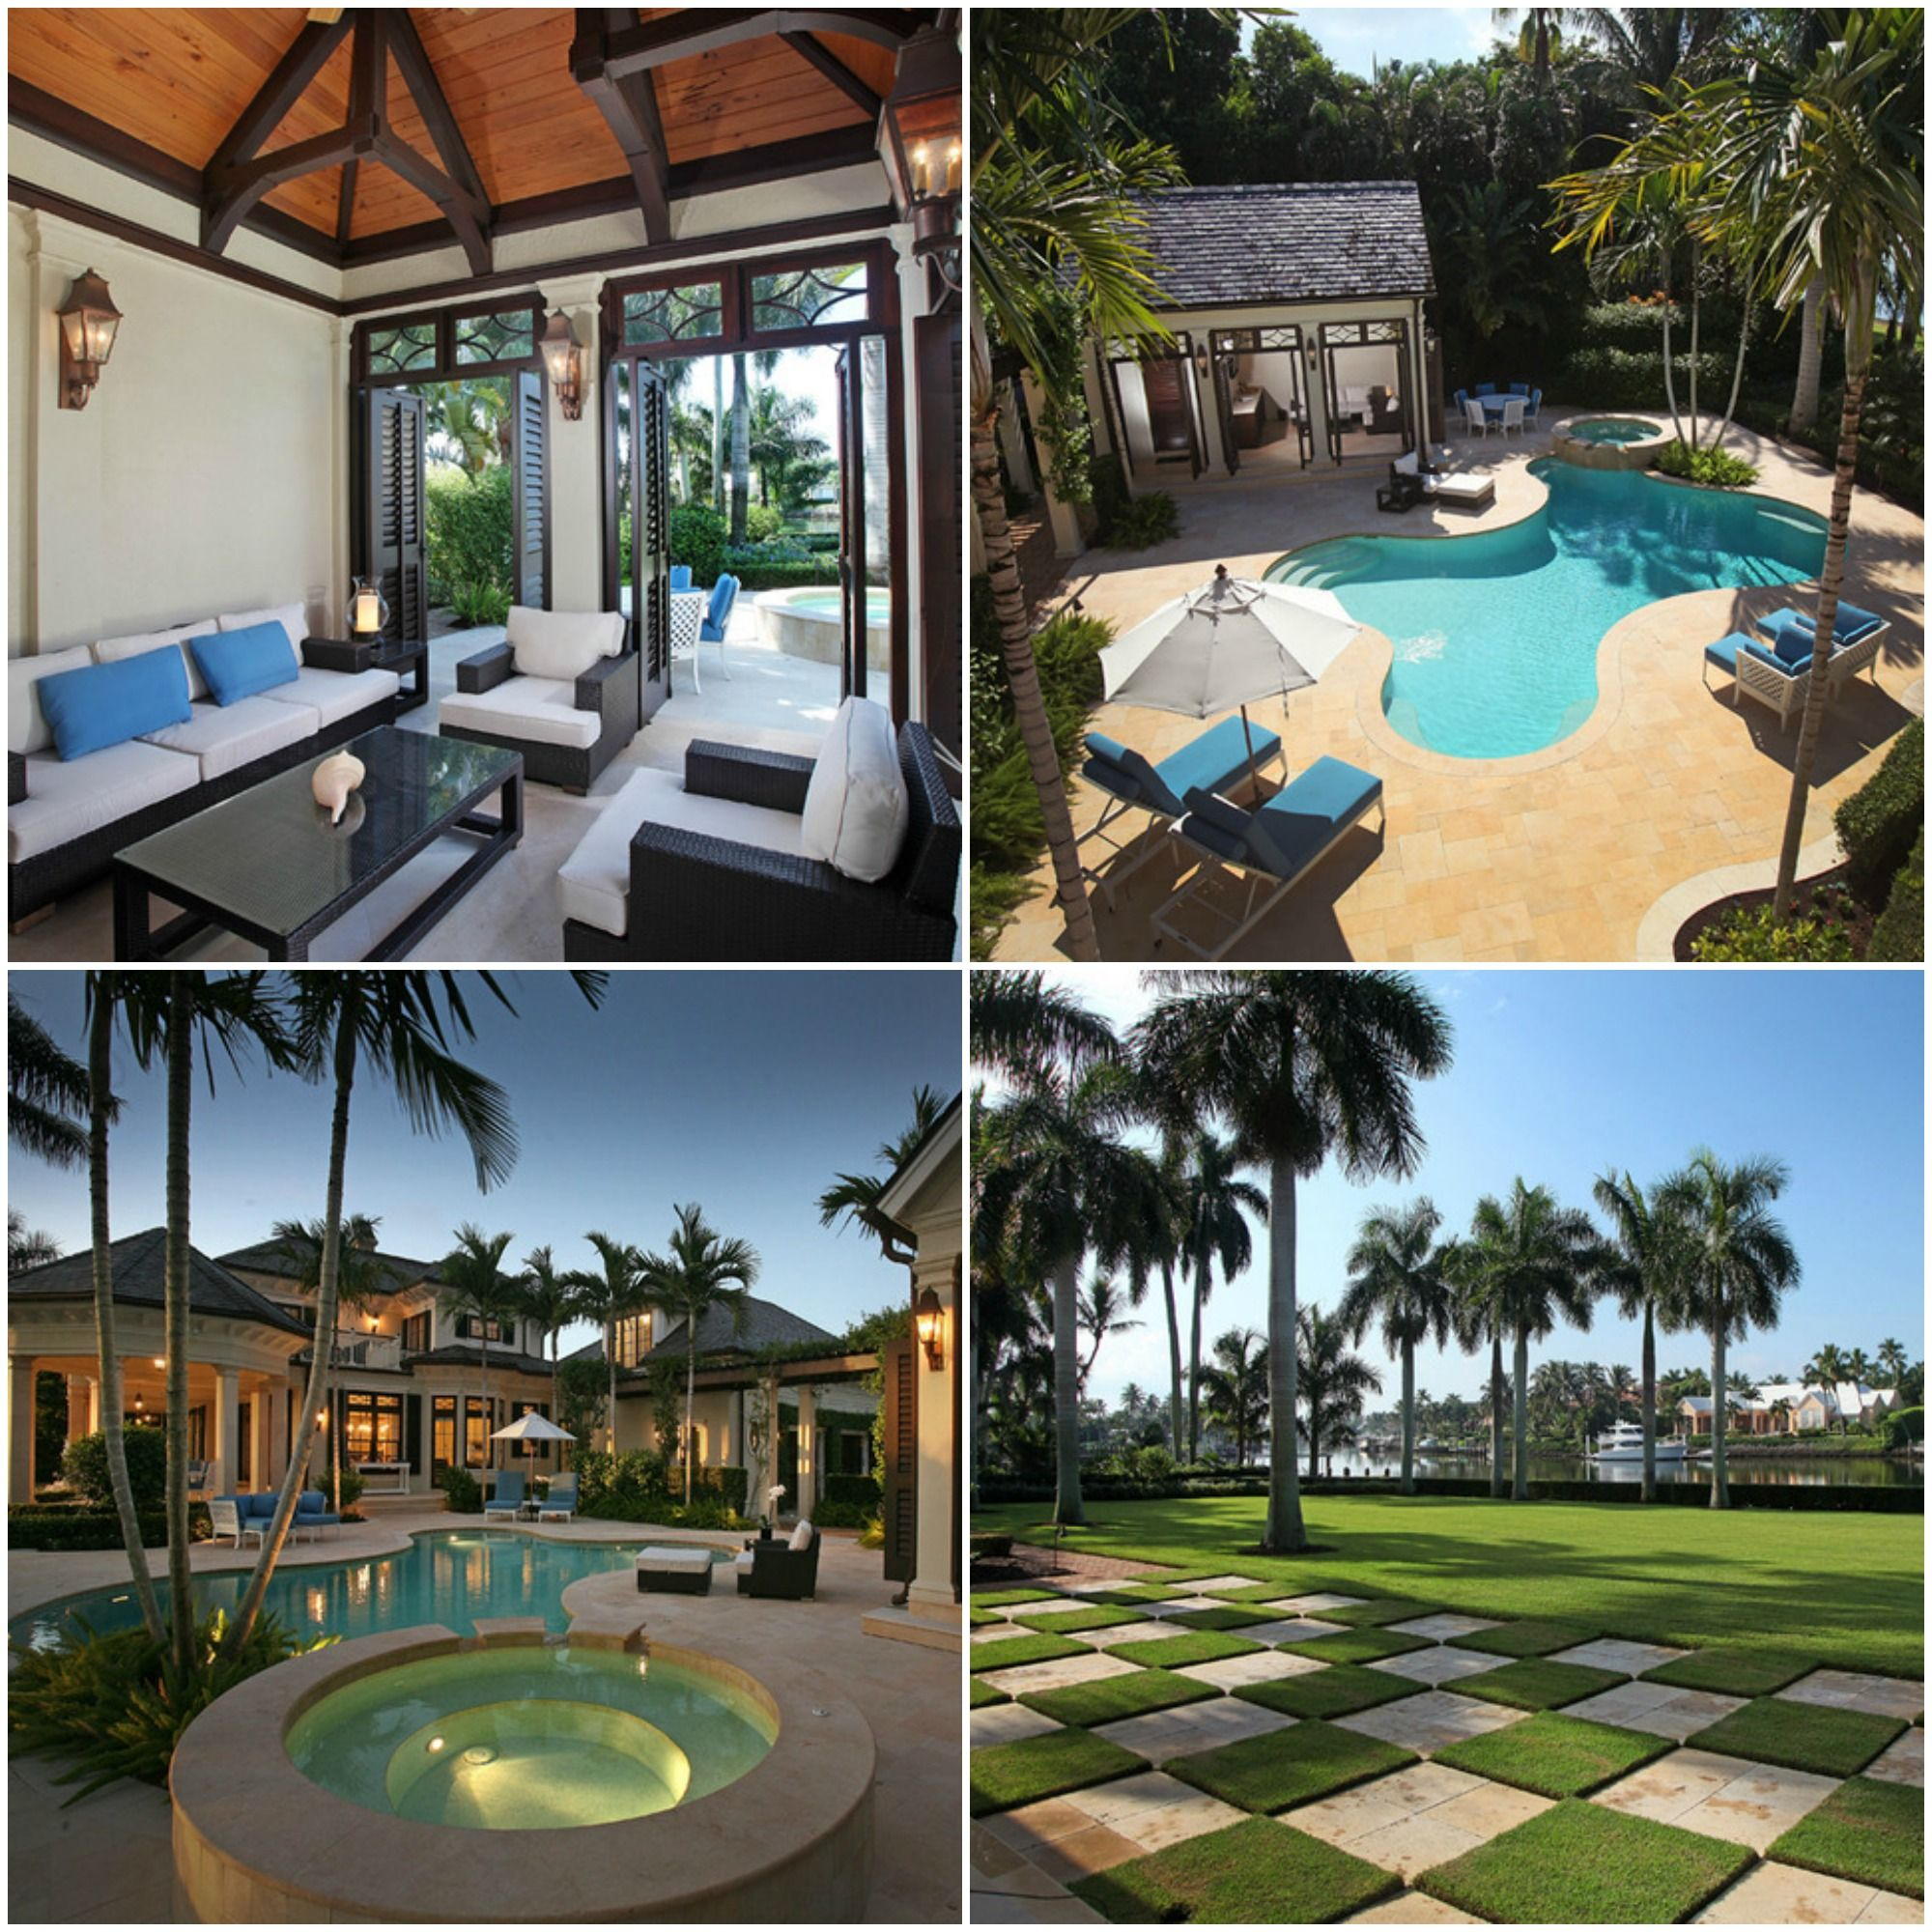 2015 Outdoor Living Space Trends by Landscape Contractors ... on Outdoor Living Space Company id=49843